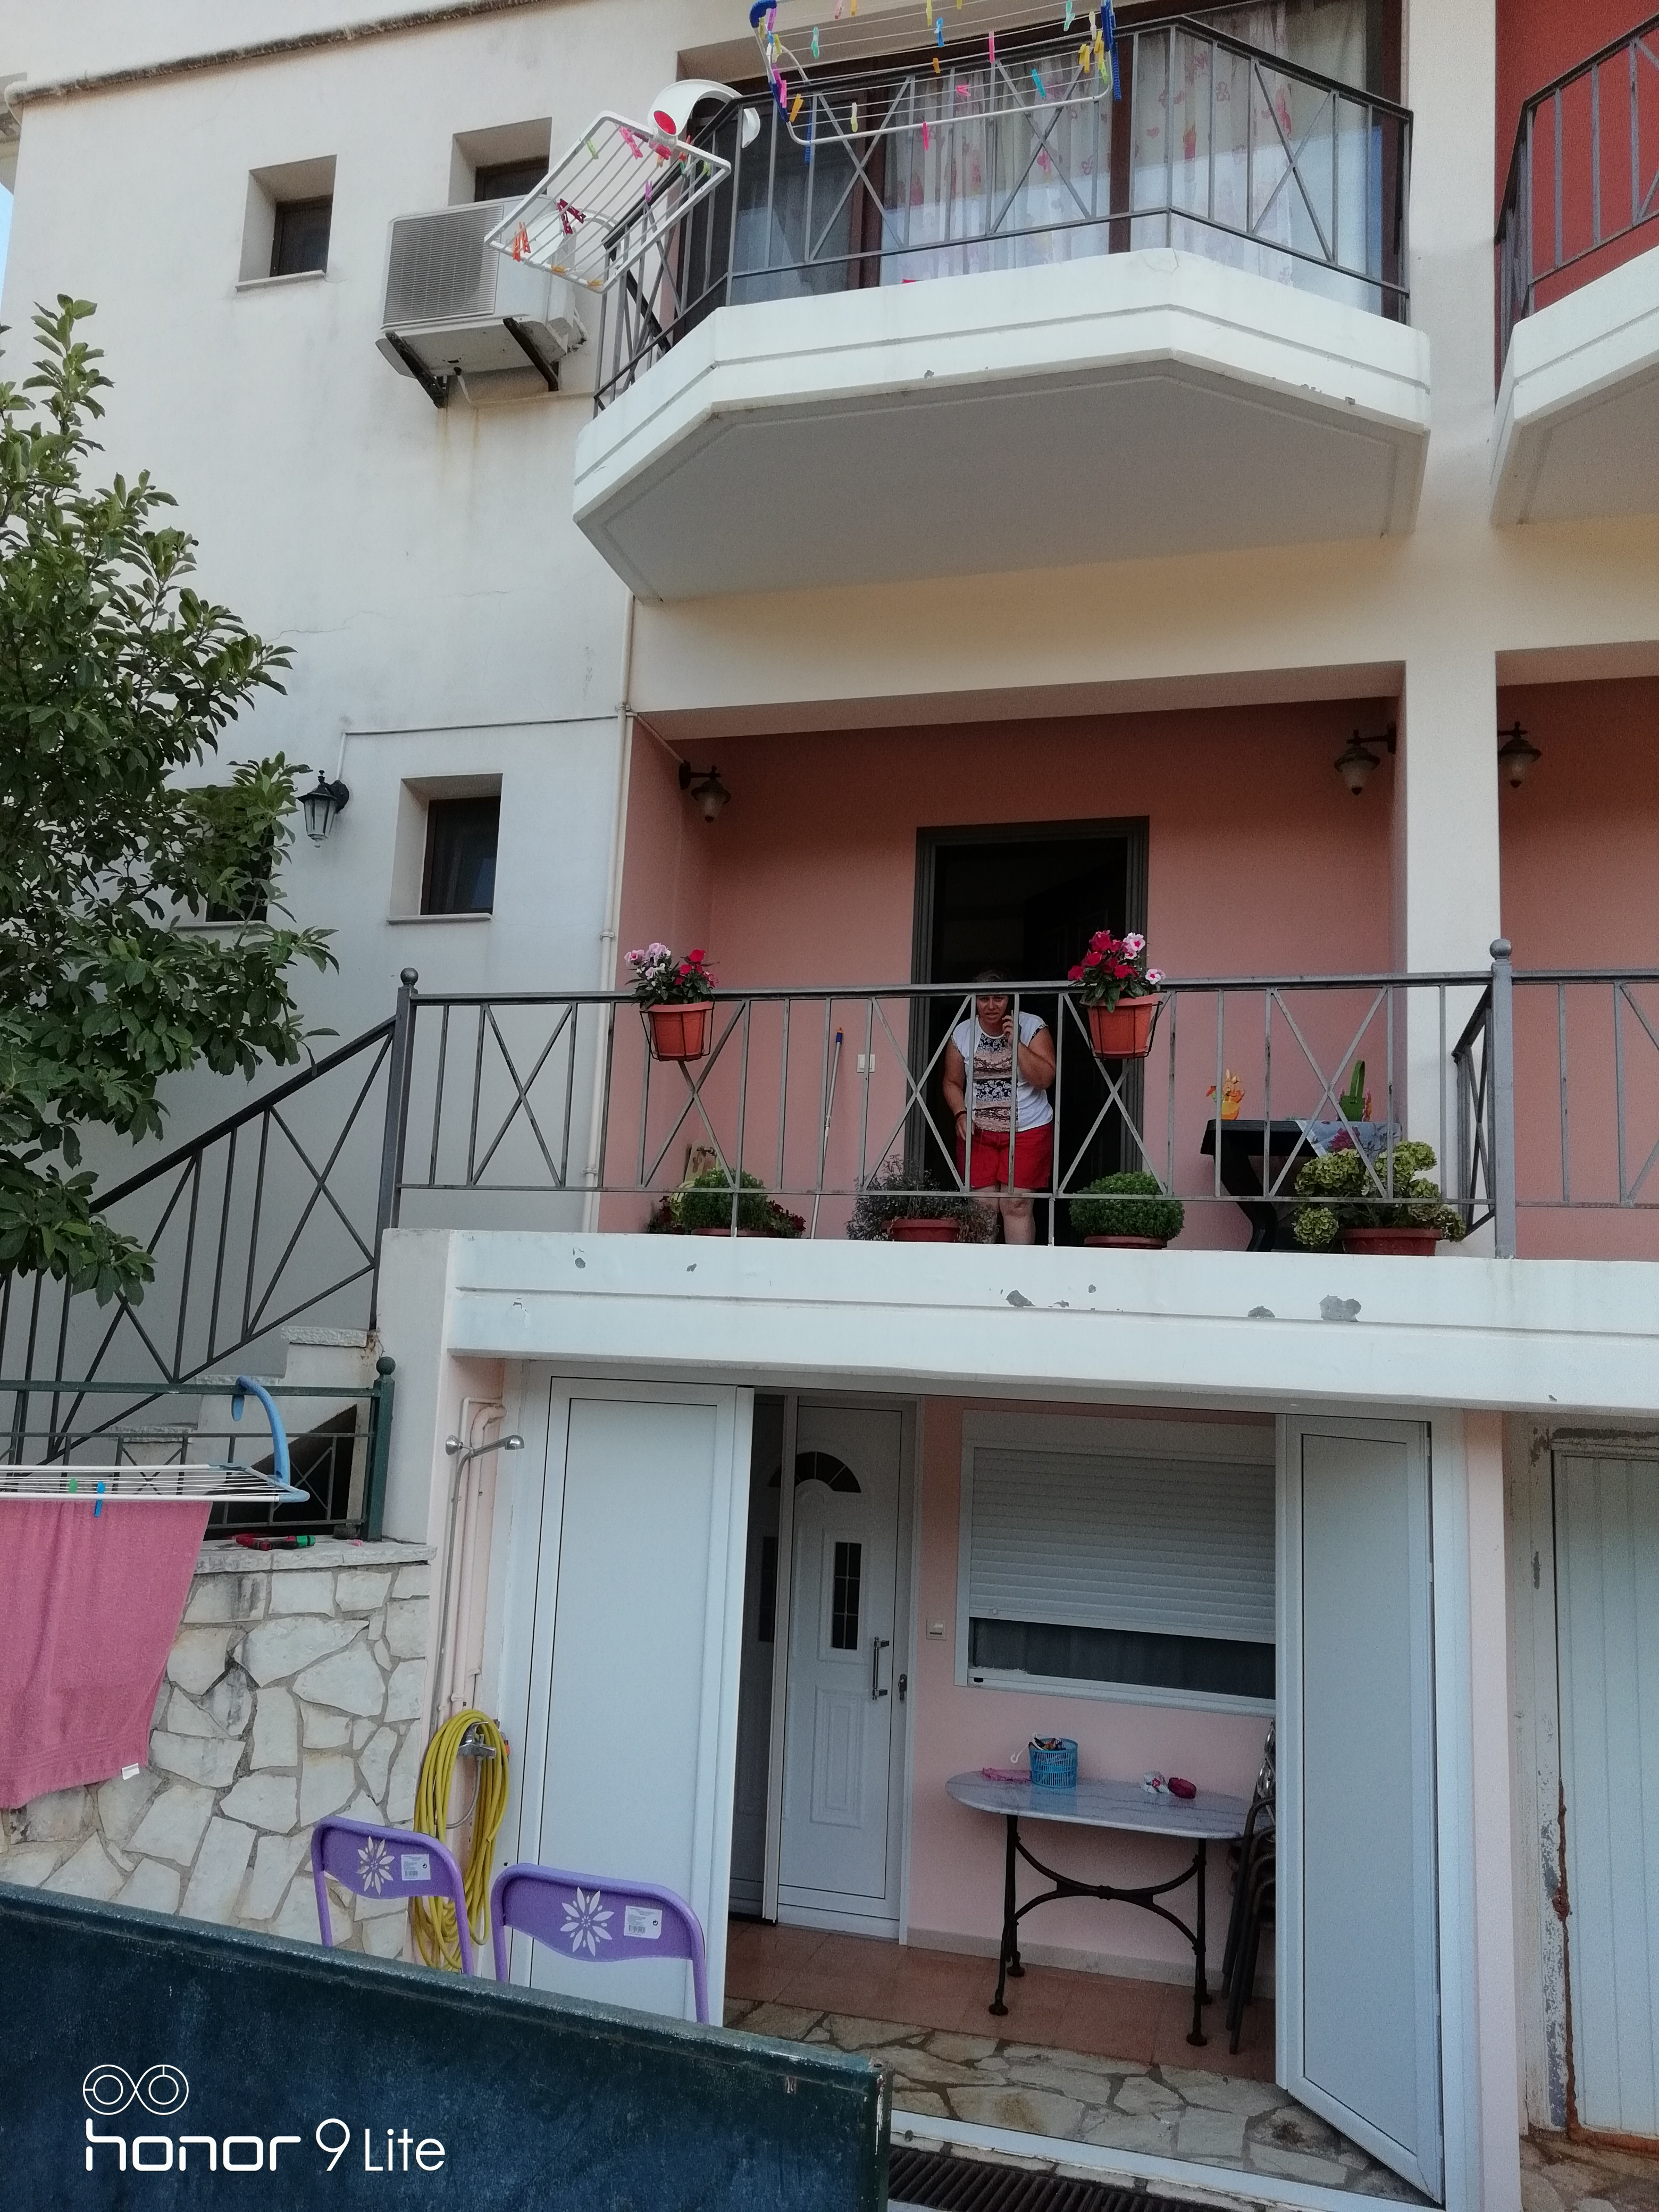 For Sale 95m2 maisonette in Sivota 120.000 Euro. (085)